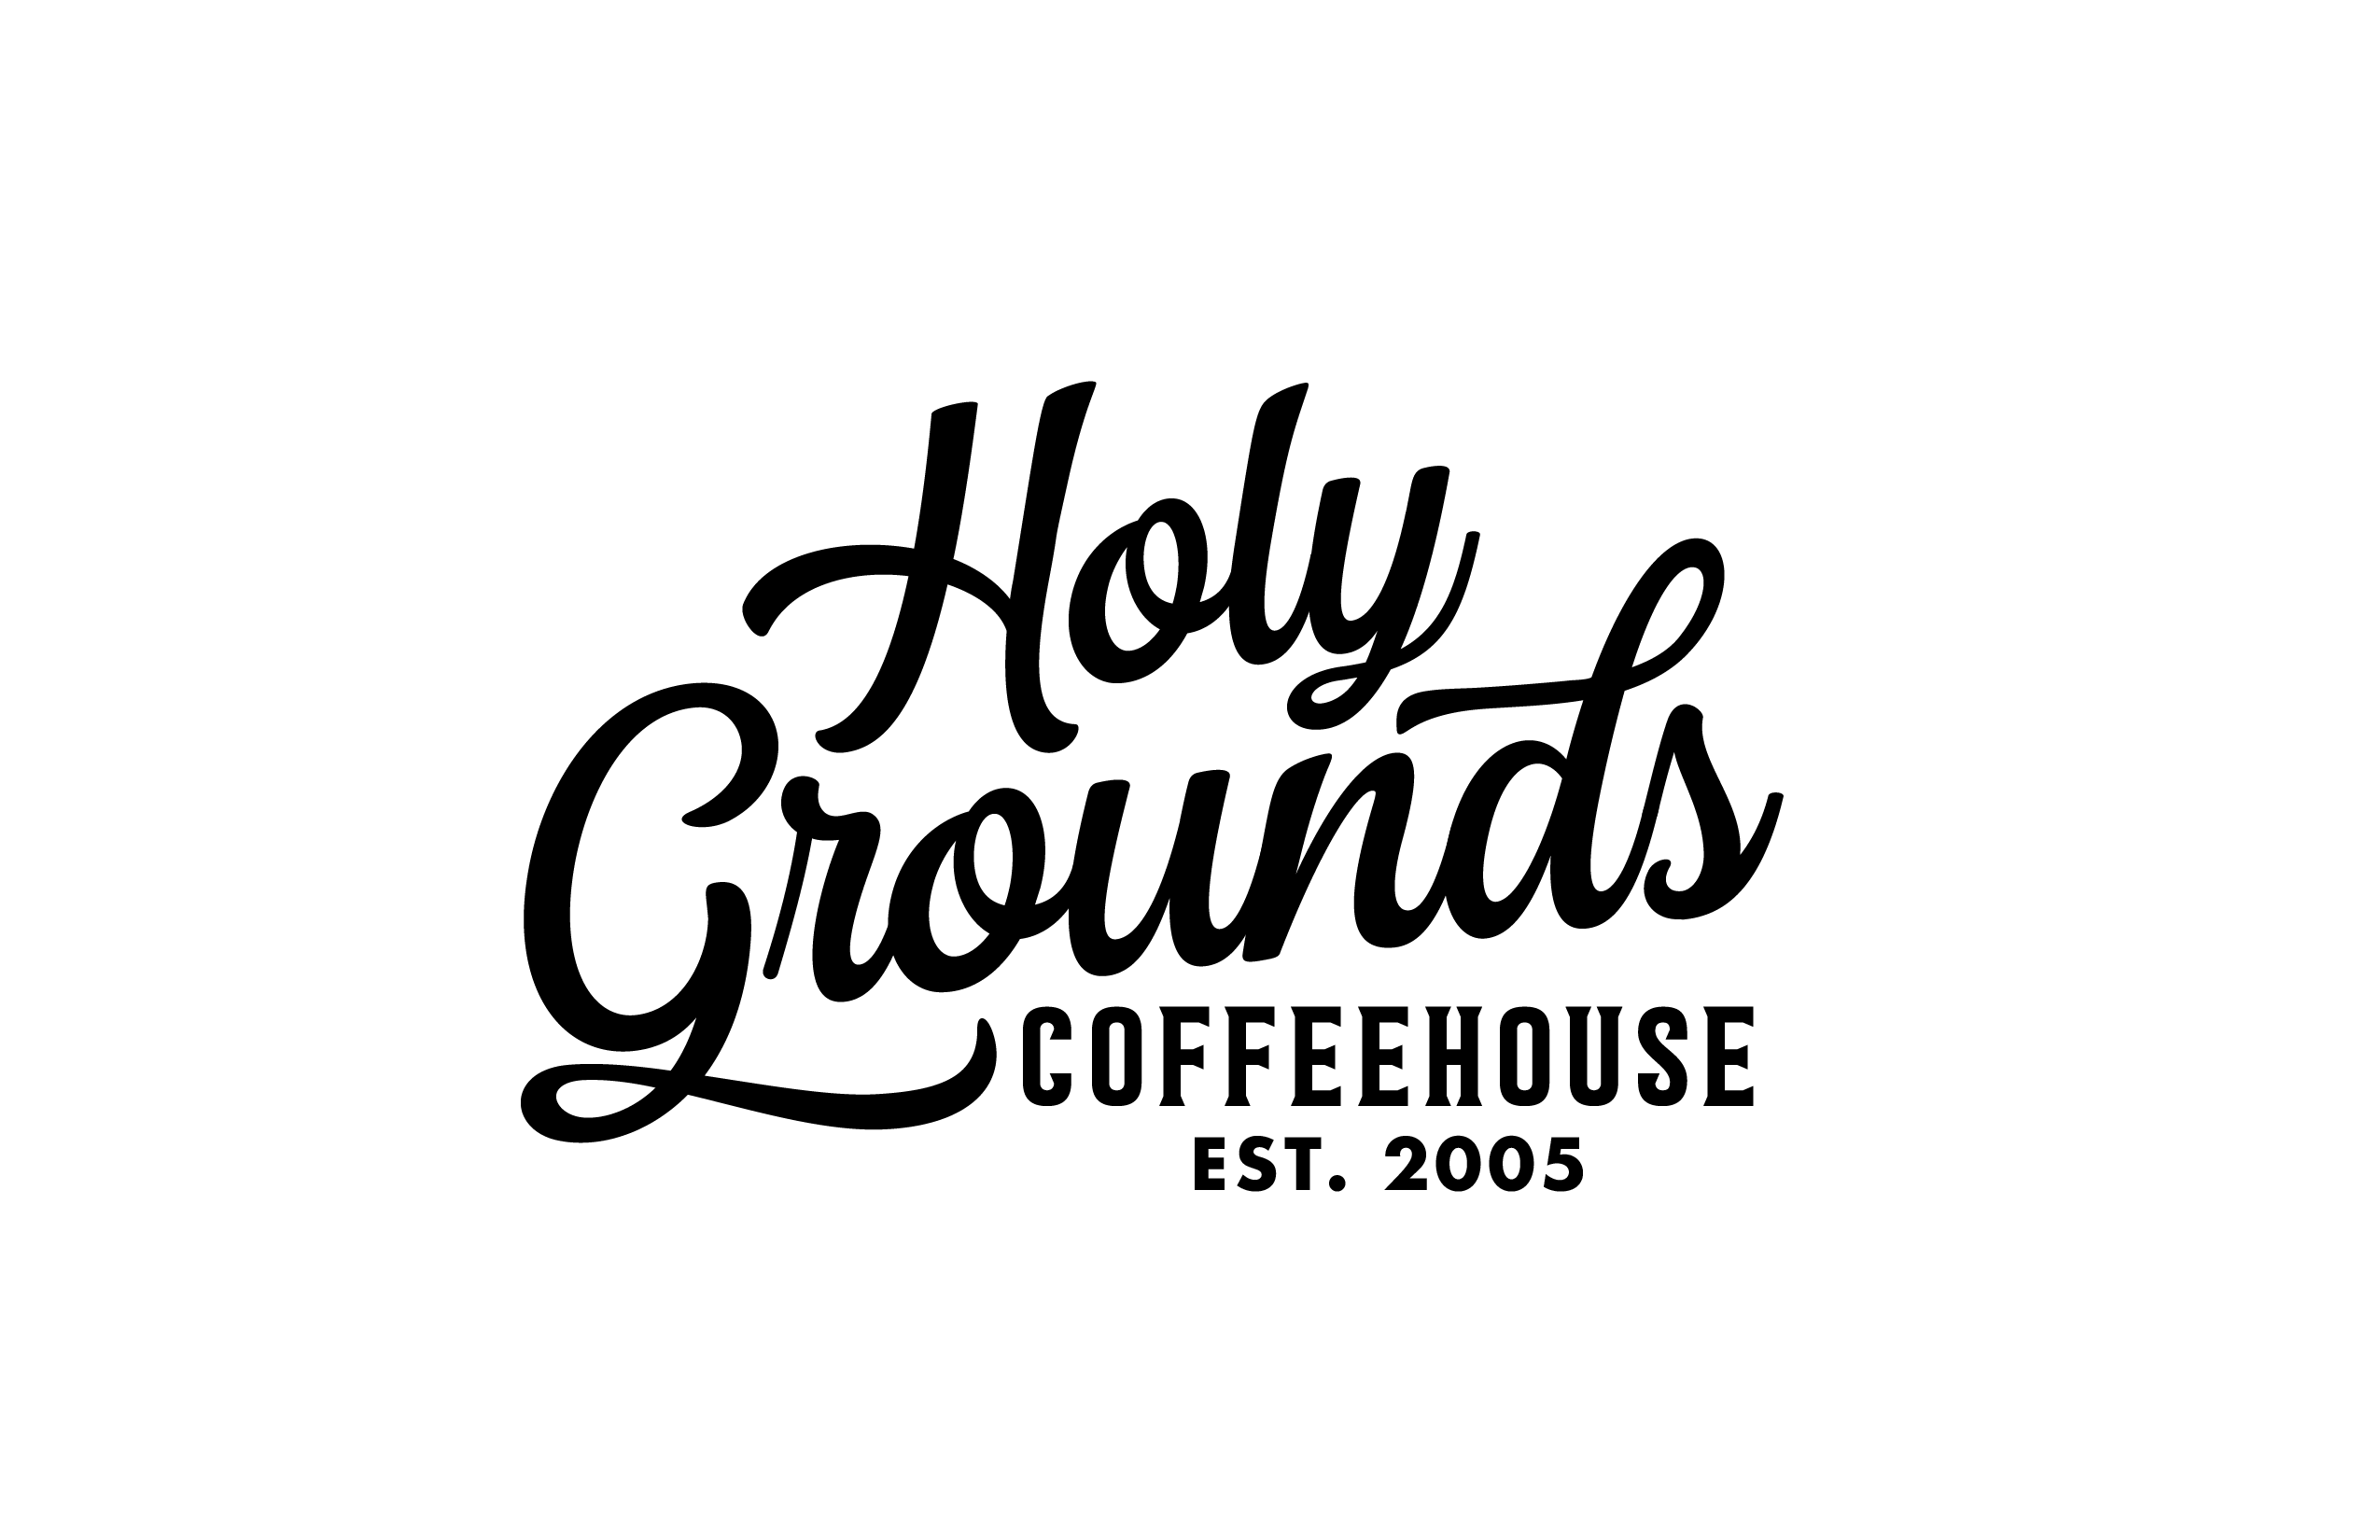 Enjoy Coffee & Conversation at Holy Grounds